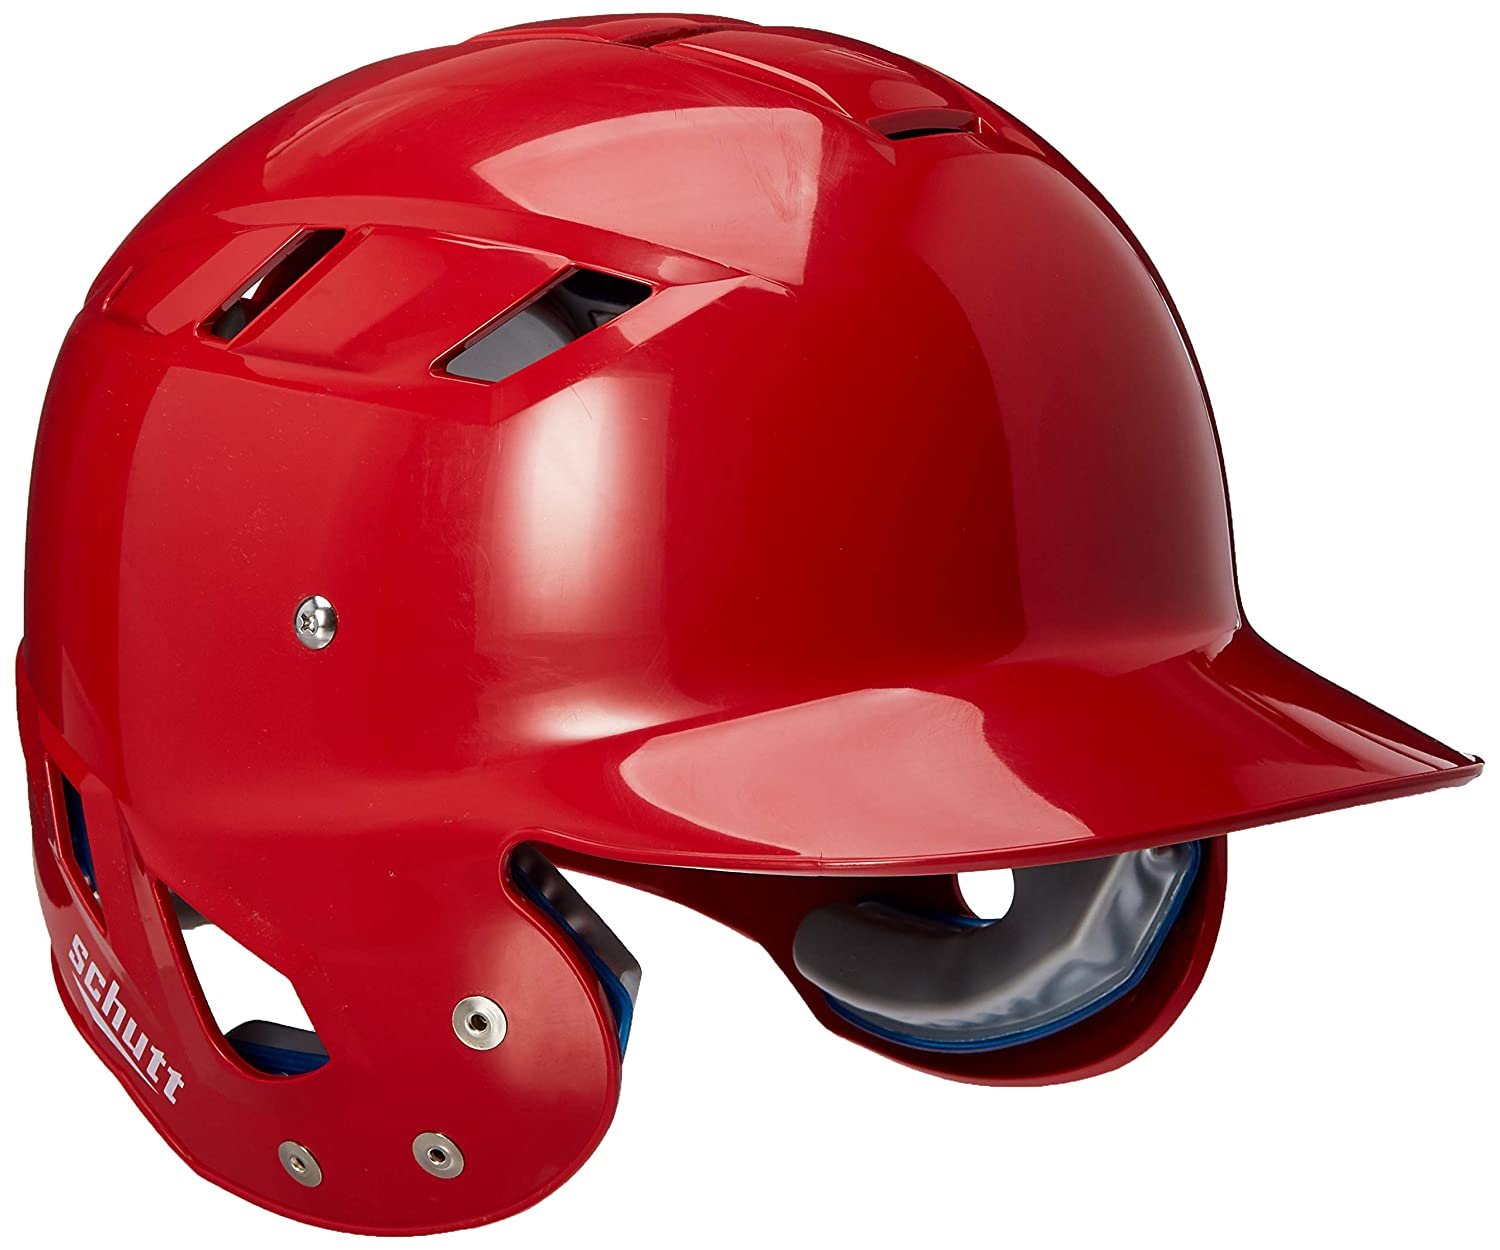 Scarlet Large Schutt Sports AiR Maxx T Baseball Batter's Helmet